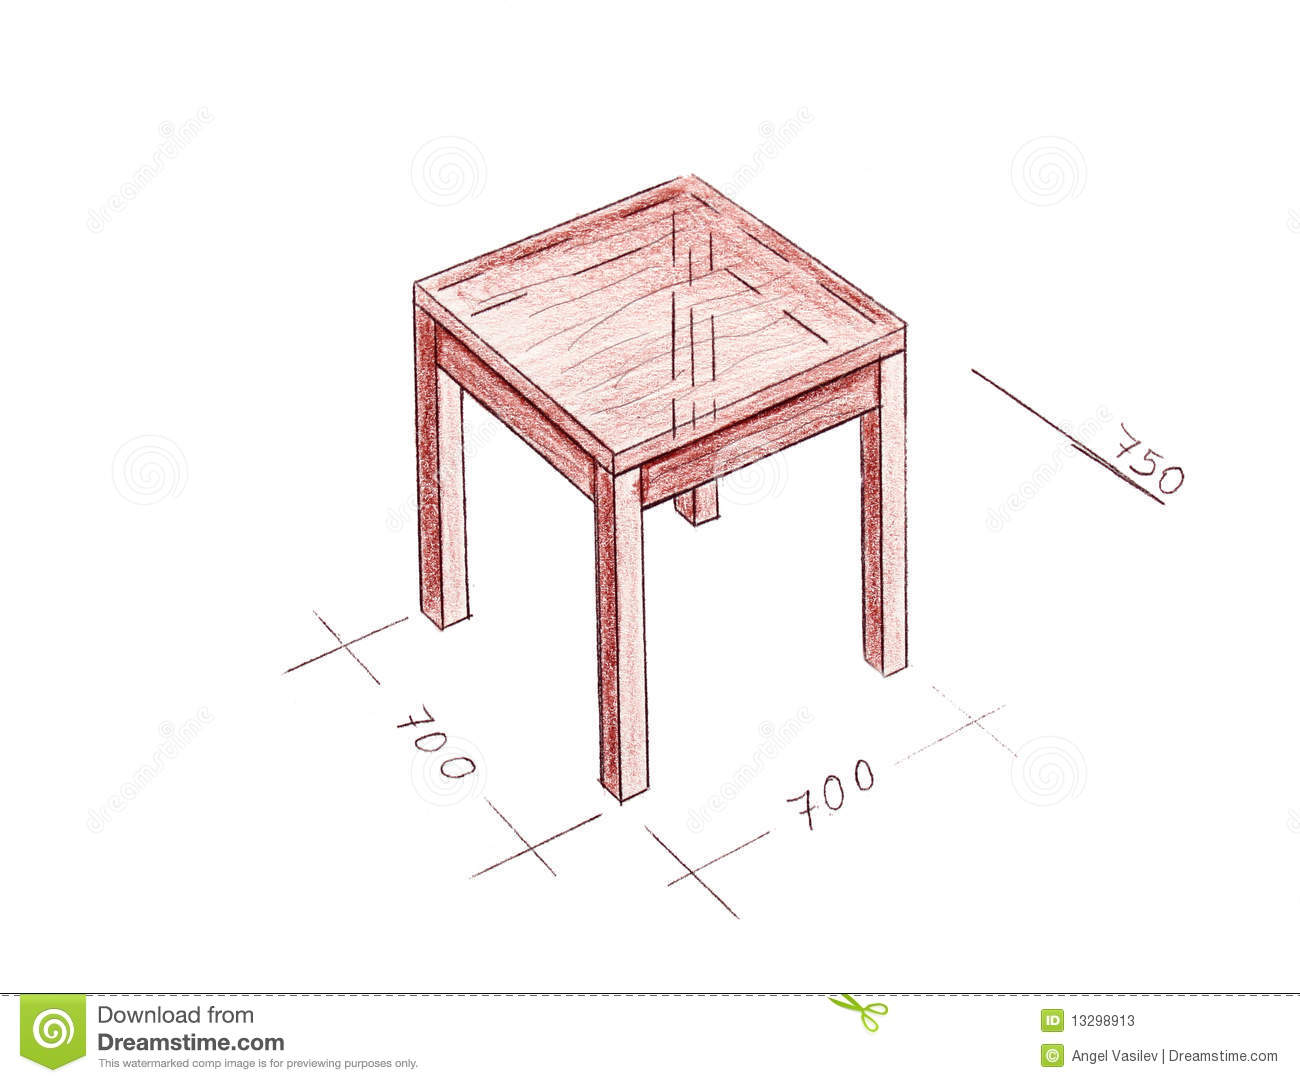 Modern interior design table freehand drawing stock for Interior design table